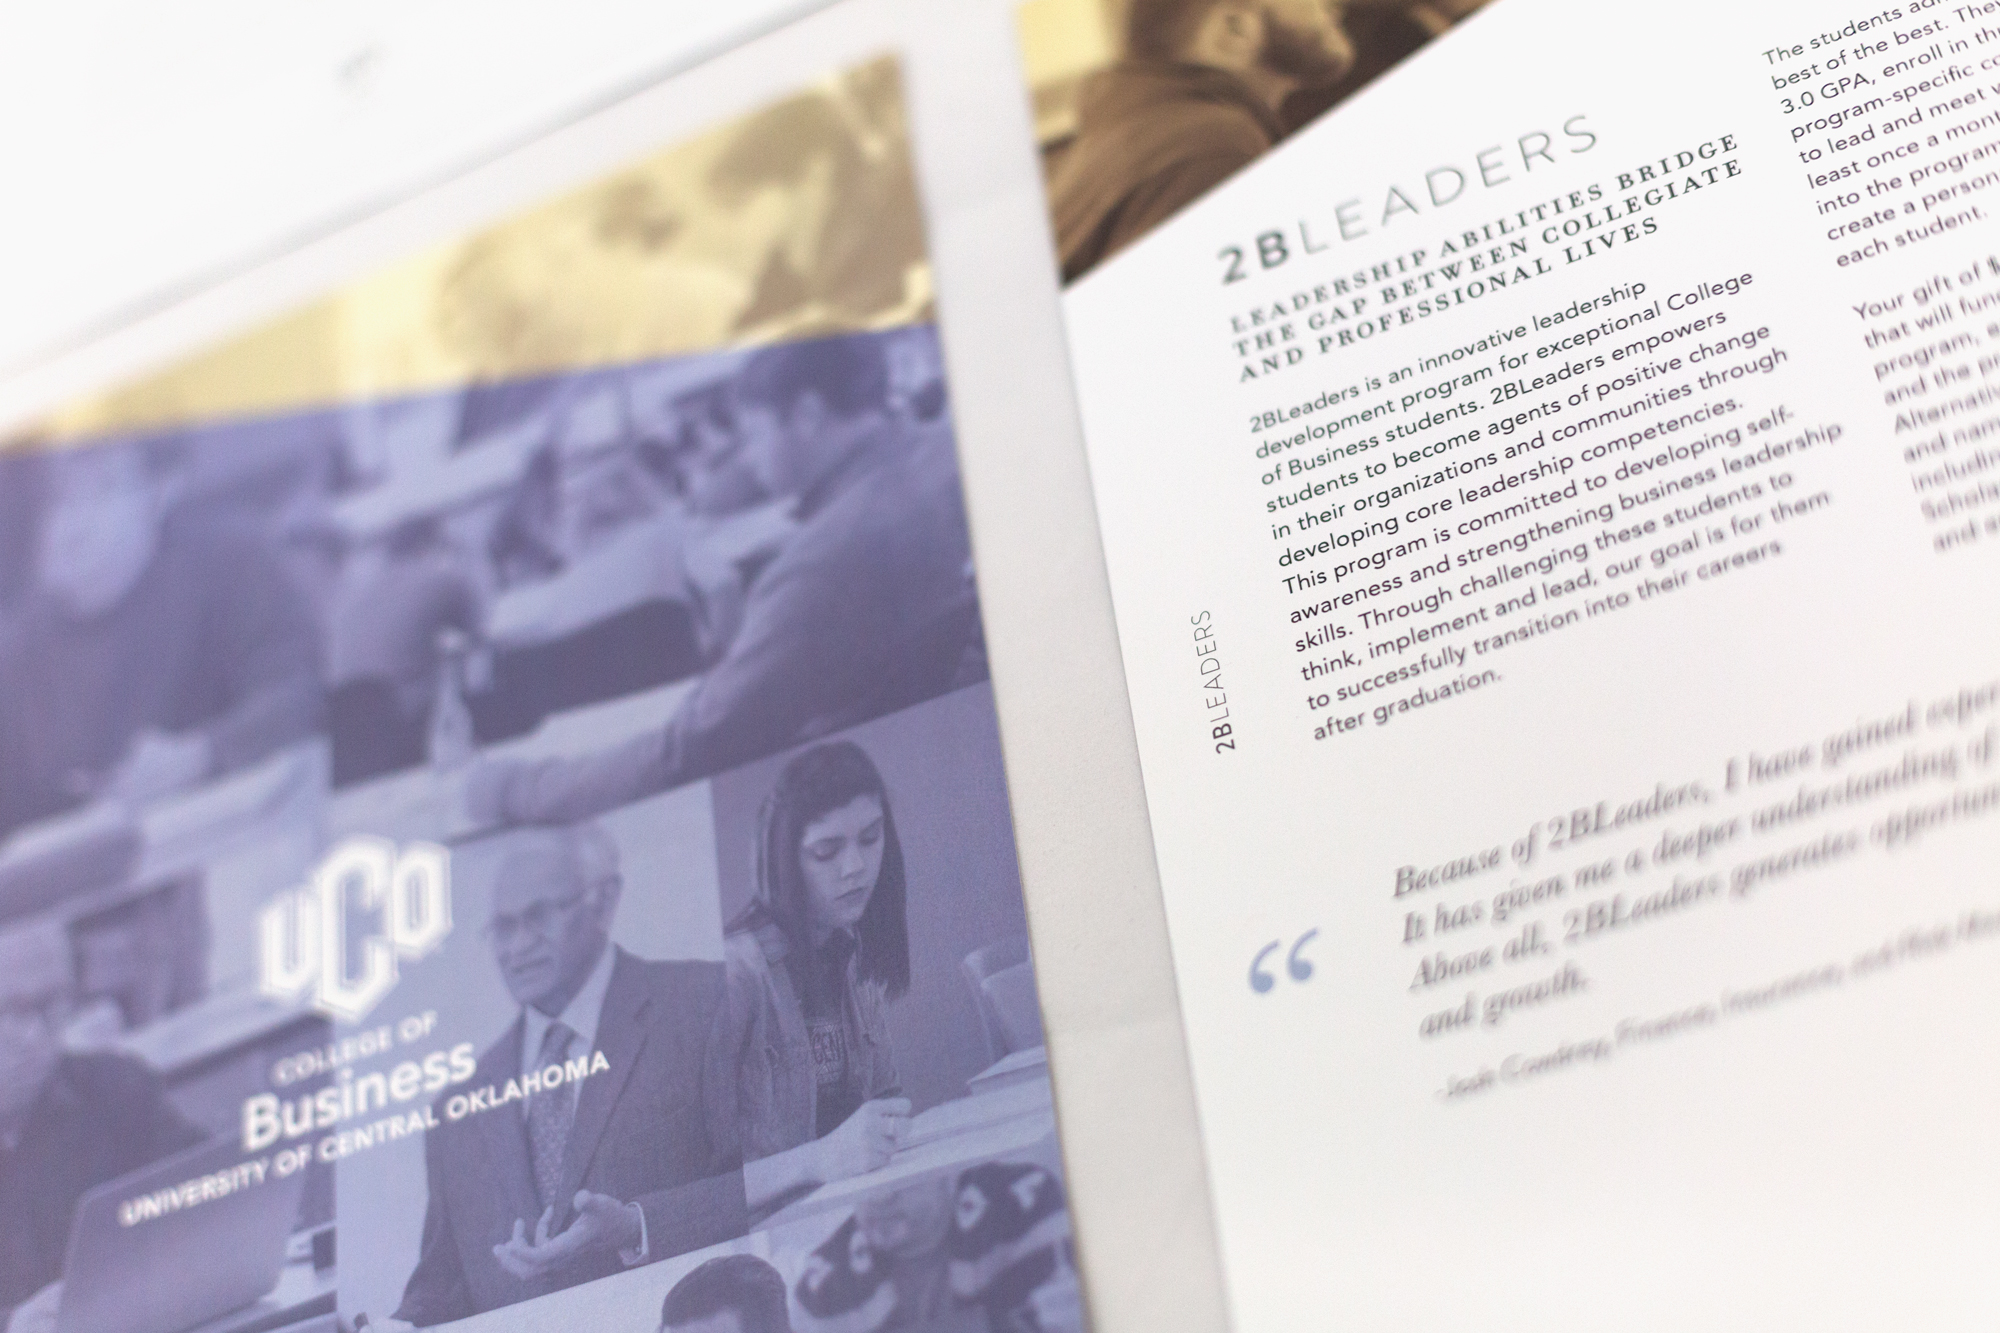 UCO College of Business Print Brochure